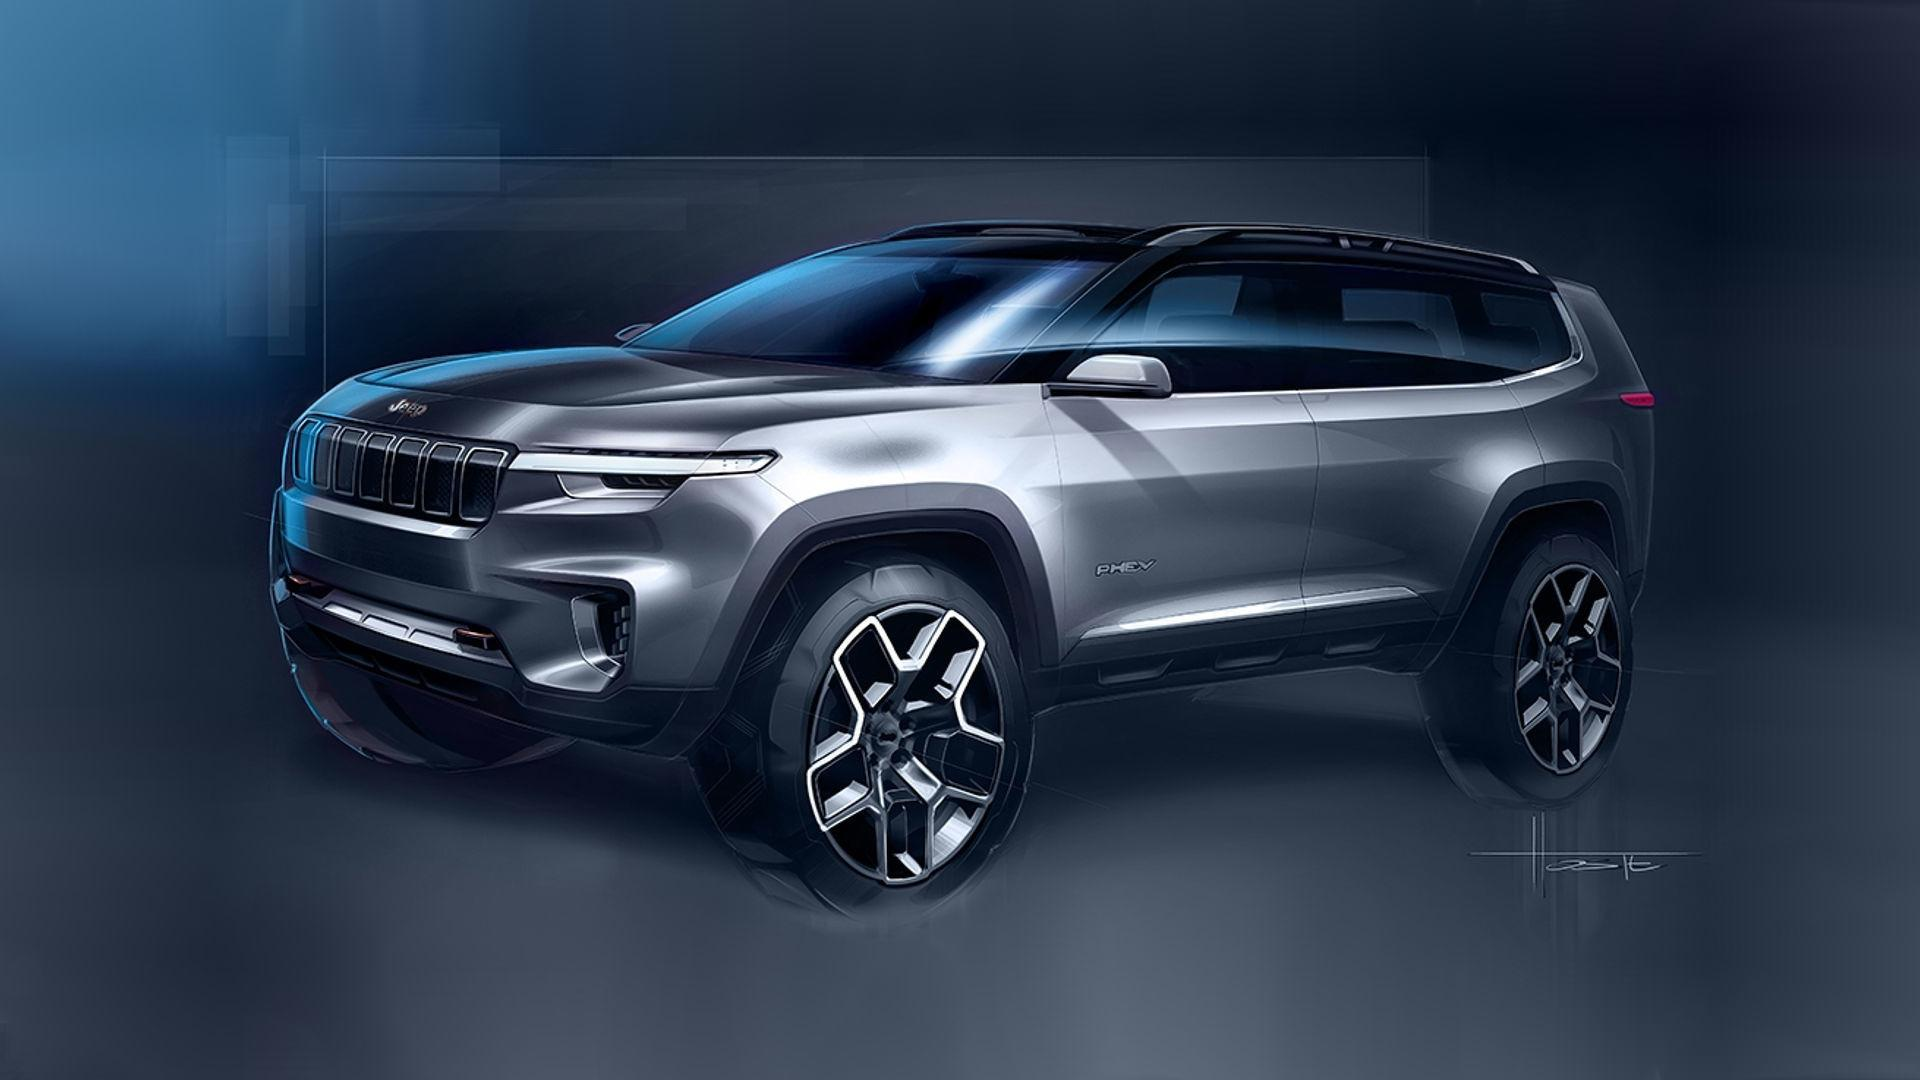 2020 Jeep Yuntu Concept SUV For next Generations